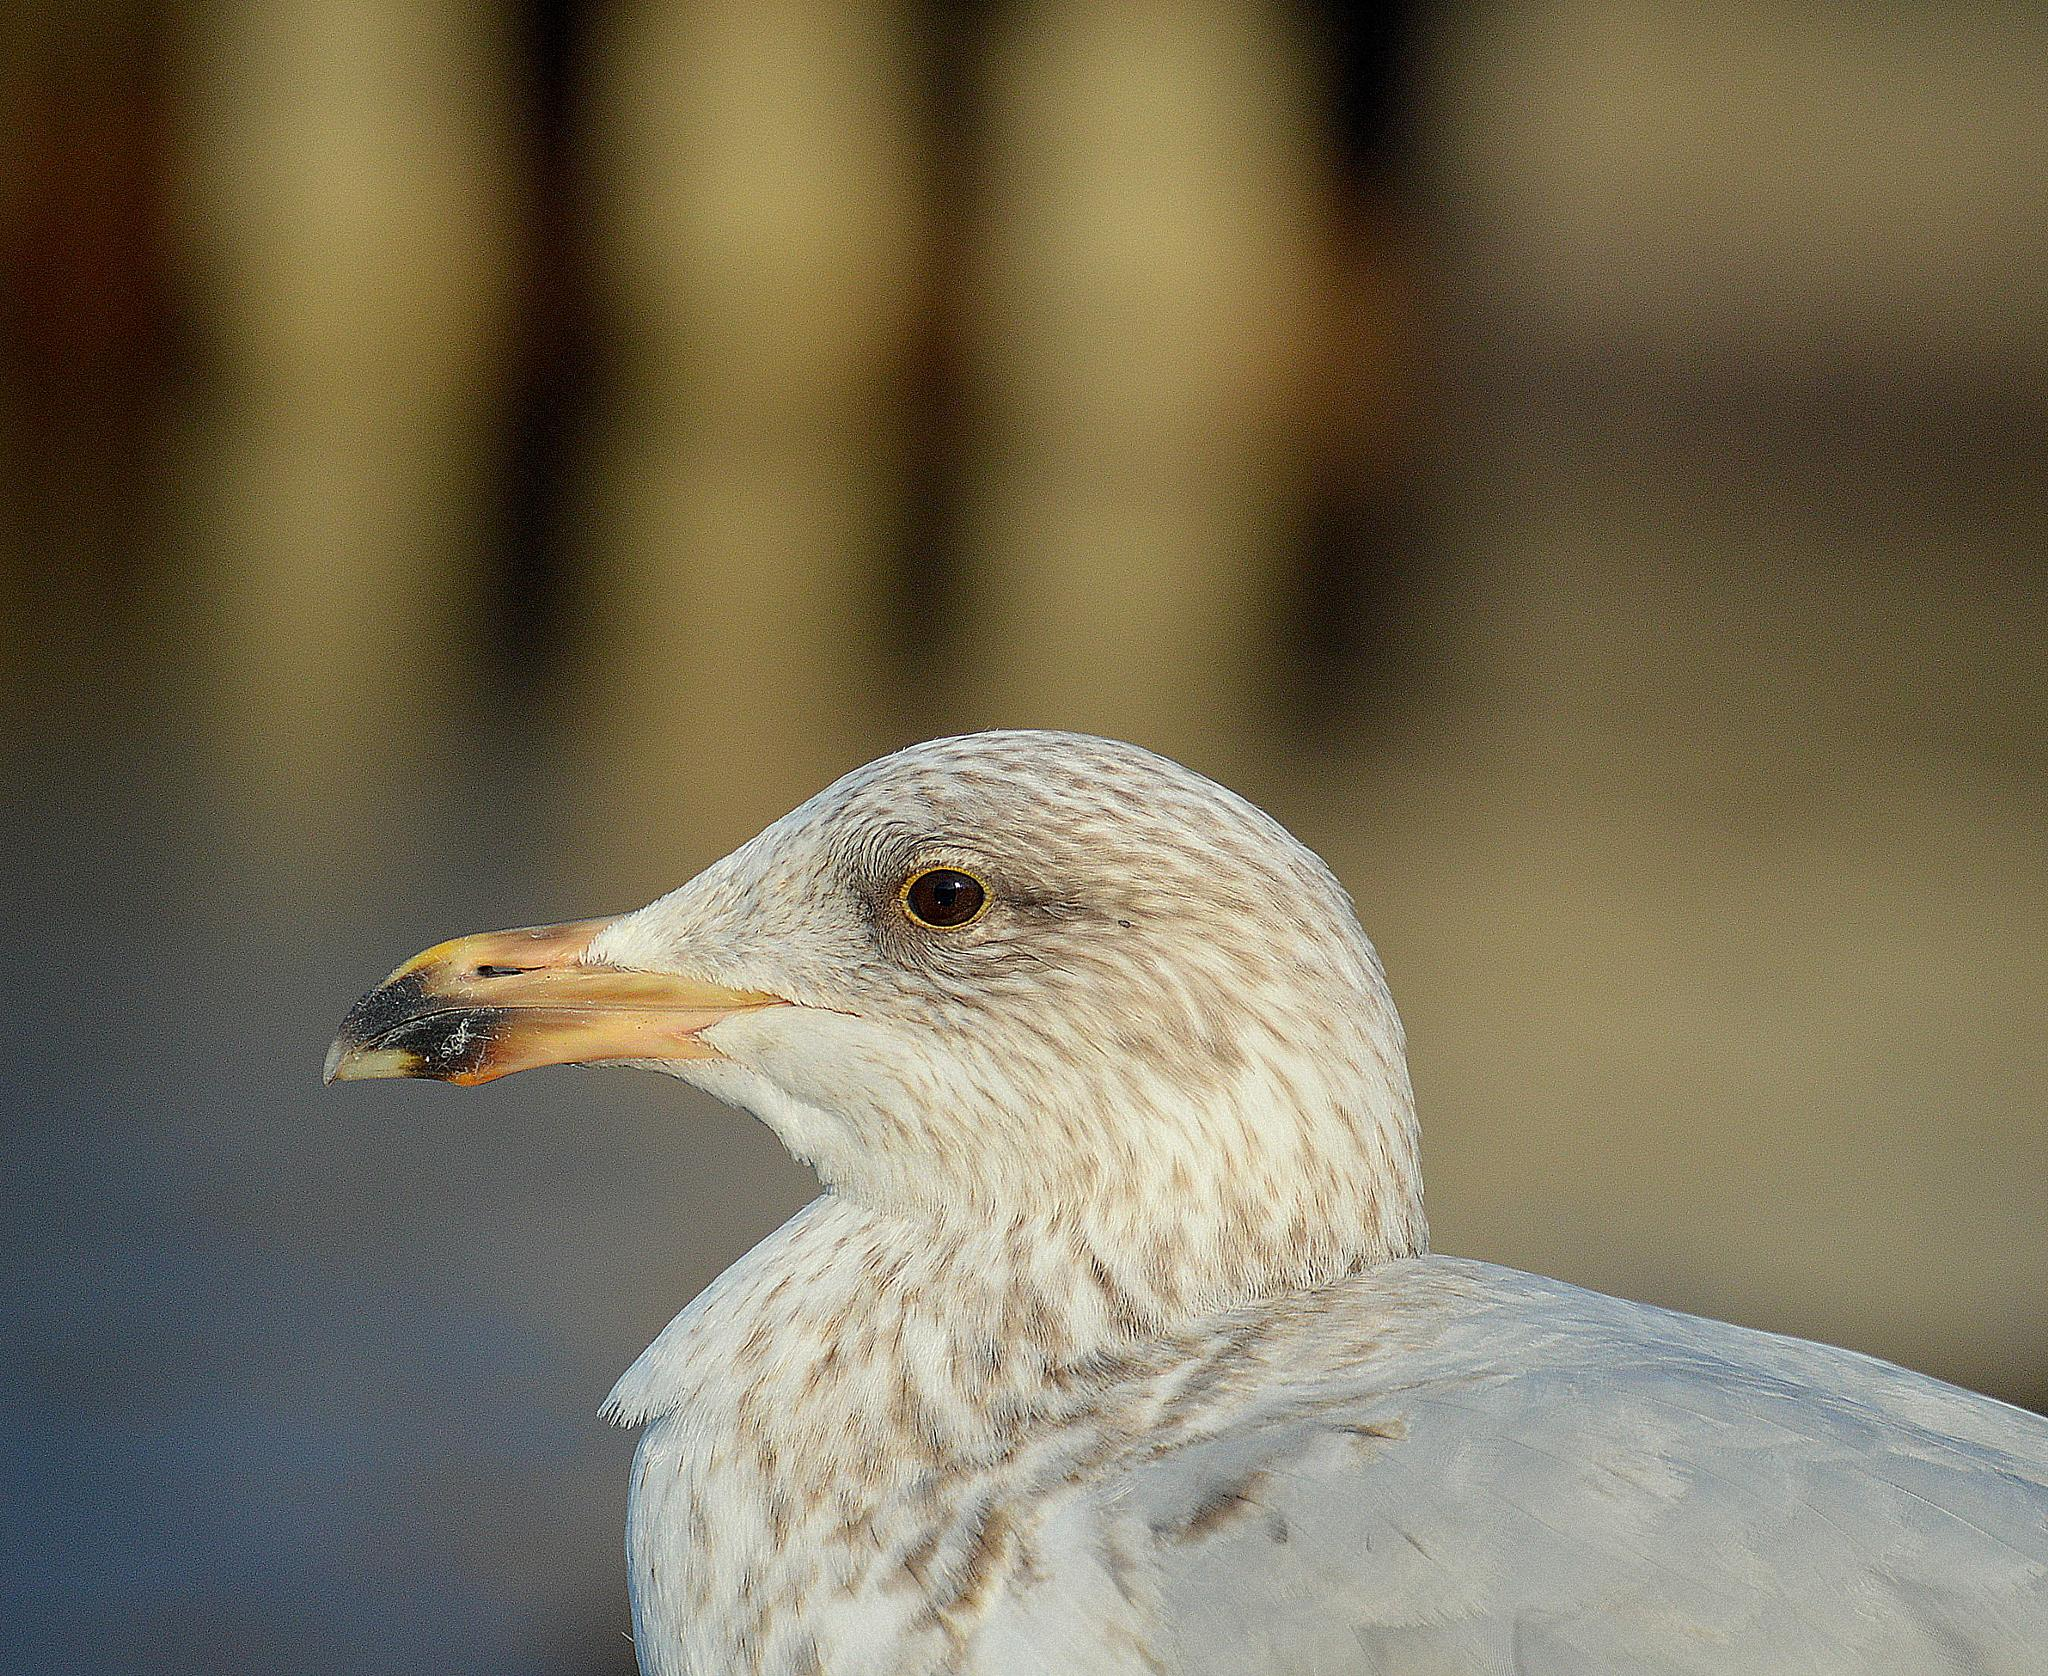 Portrait of a Sea Gull by James Bullis-King